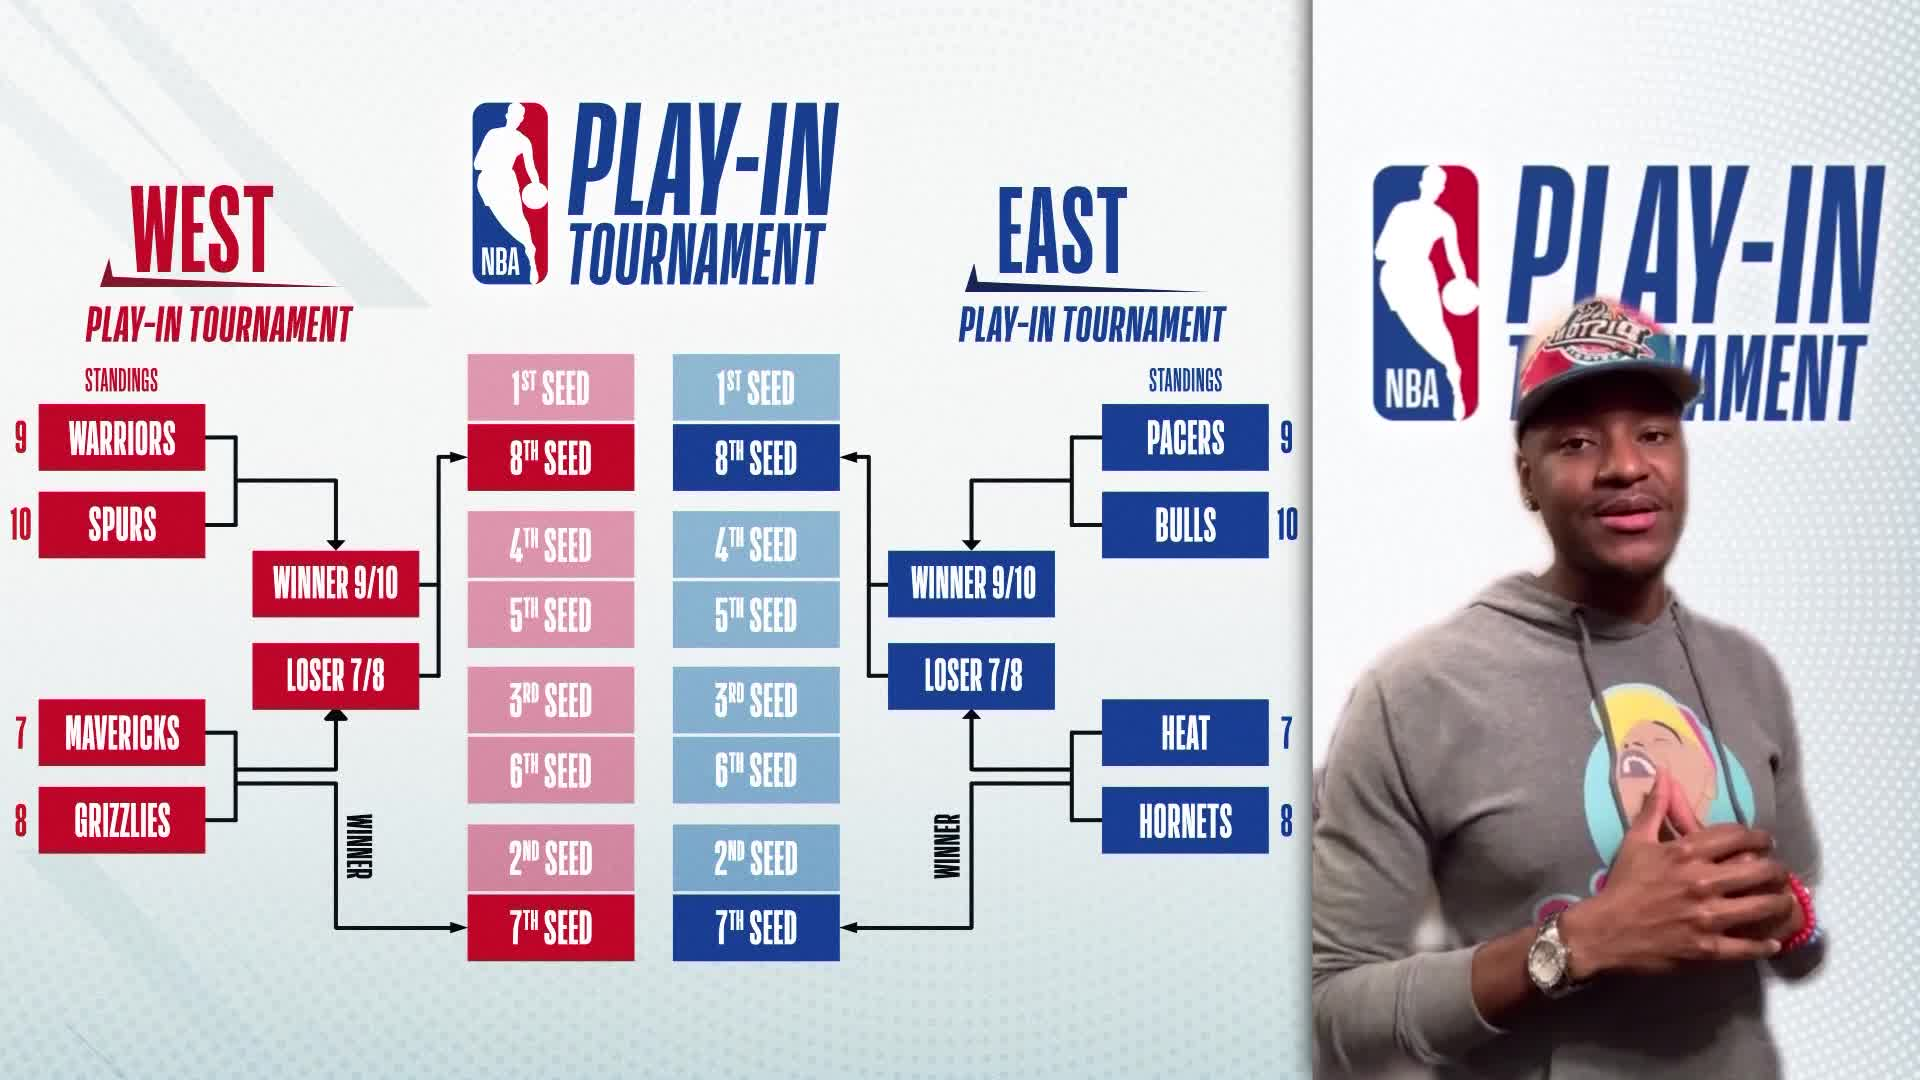 NBA Play-In Tournament Update